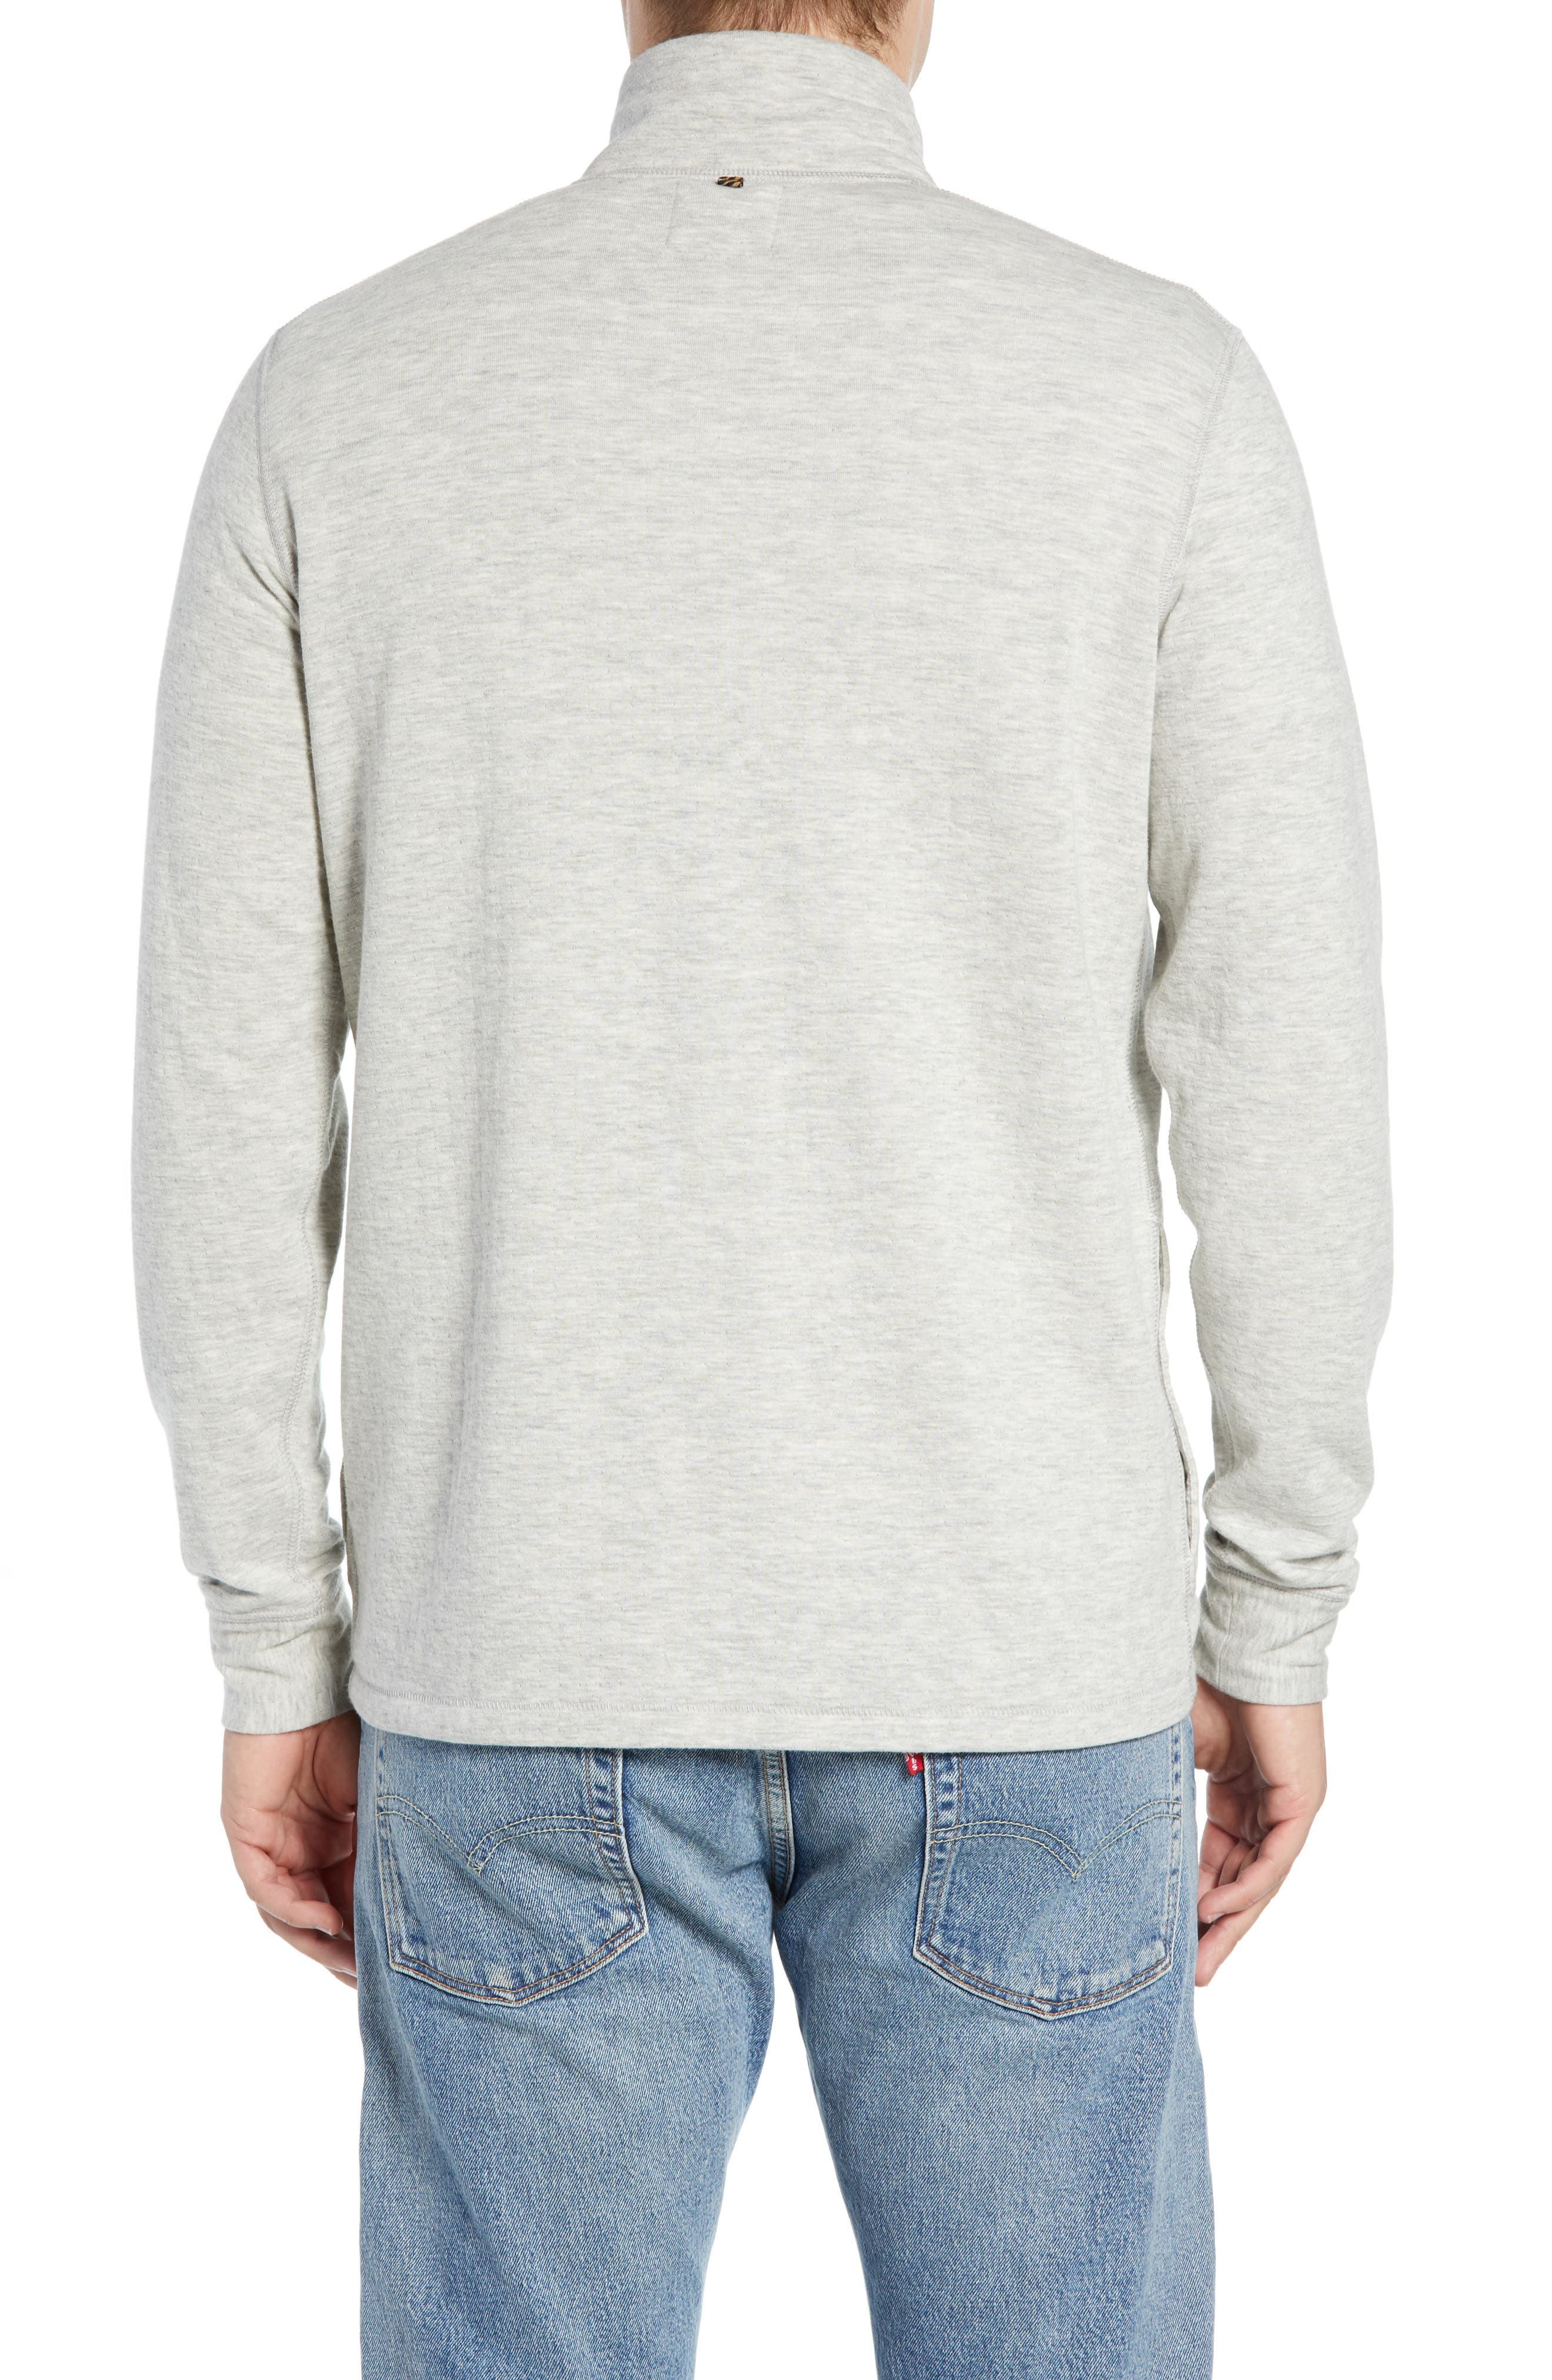 Charles Regular Fit Half Zip Sweater,                             Alternate thumbnail 2, color,                             074